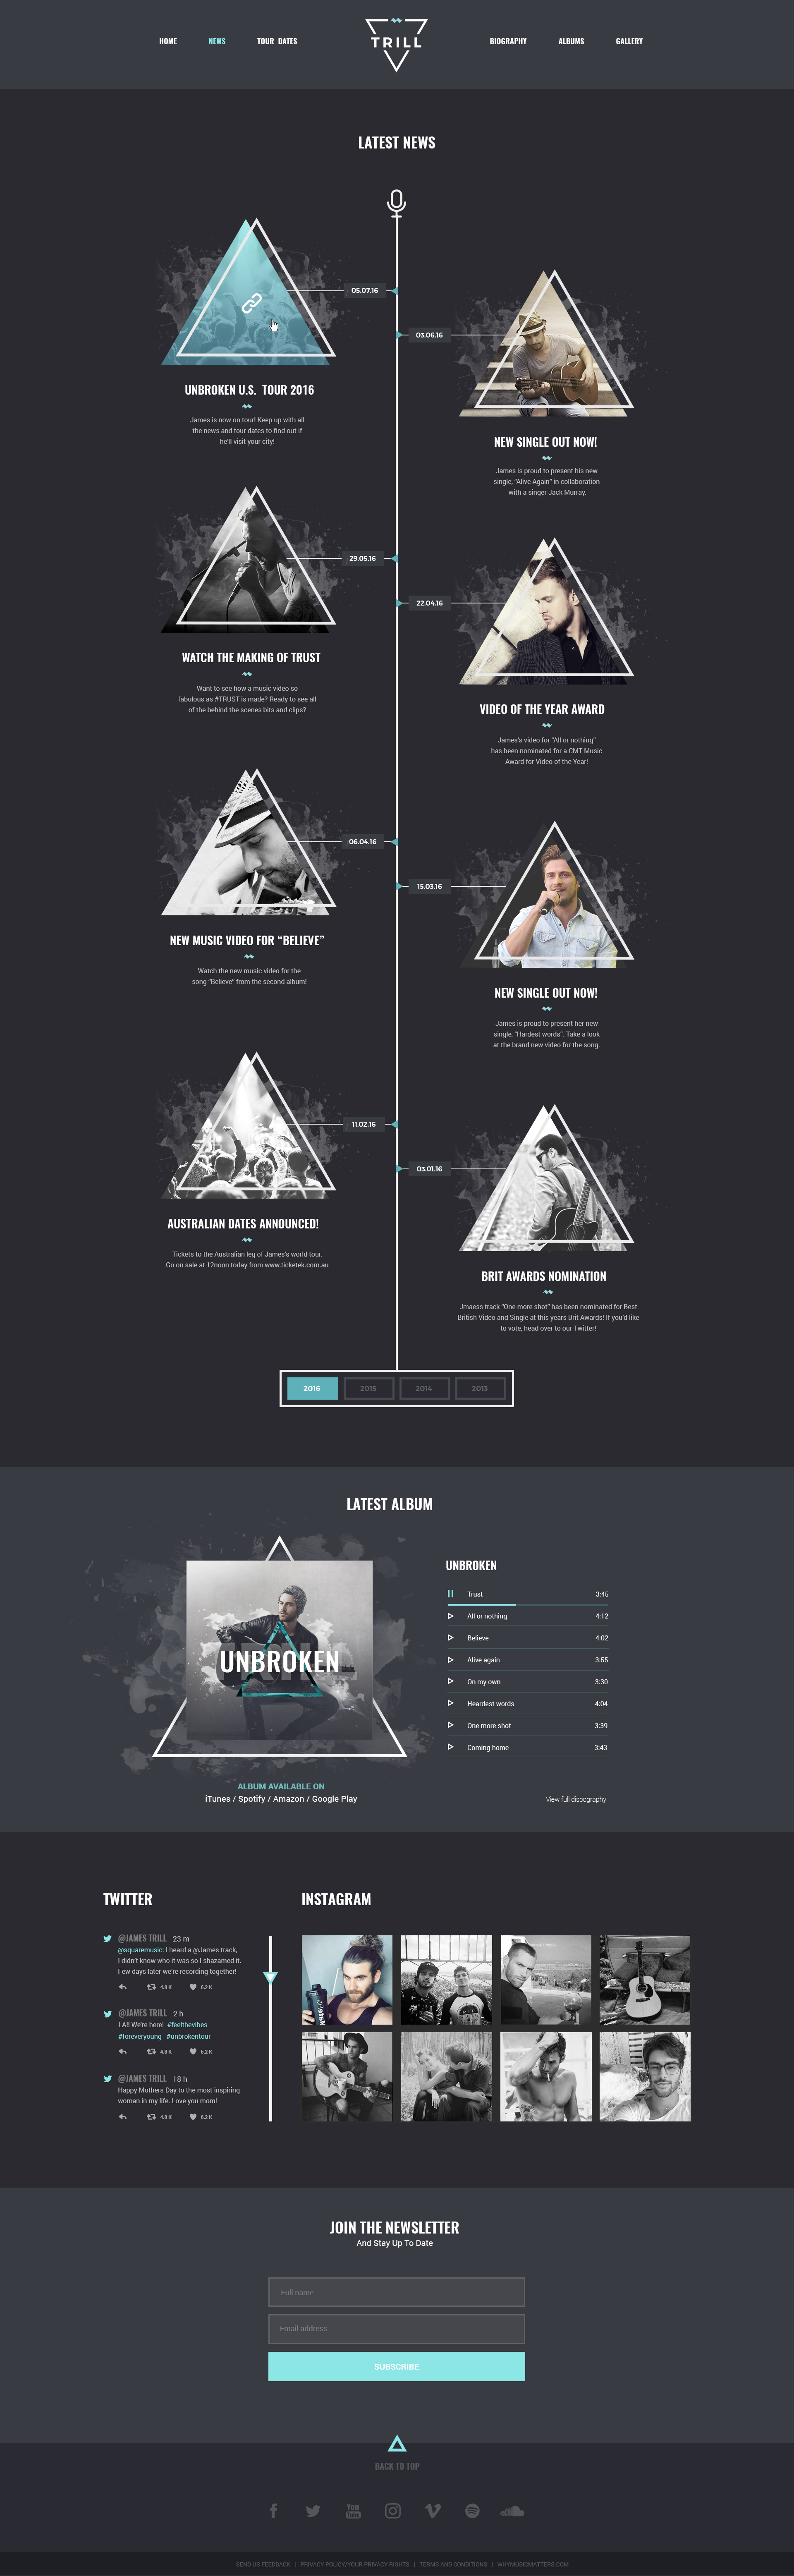 Trill Modern Psd Music Template For Bands Amp Musicians By